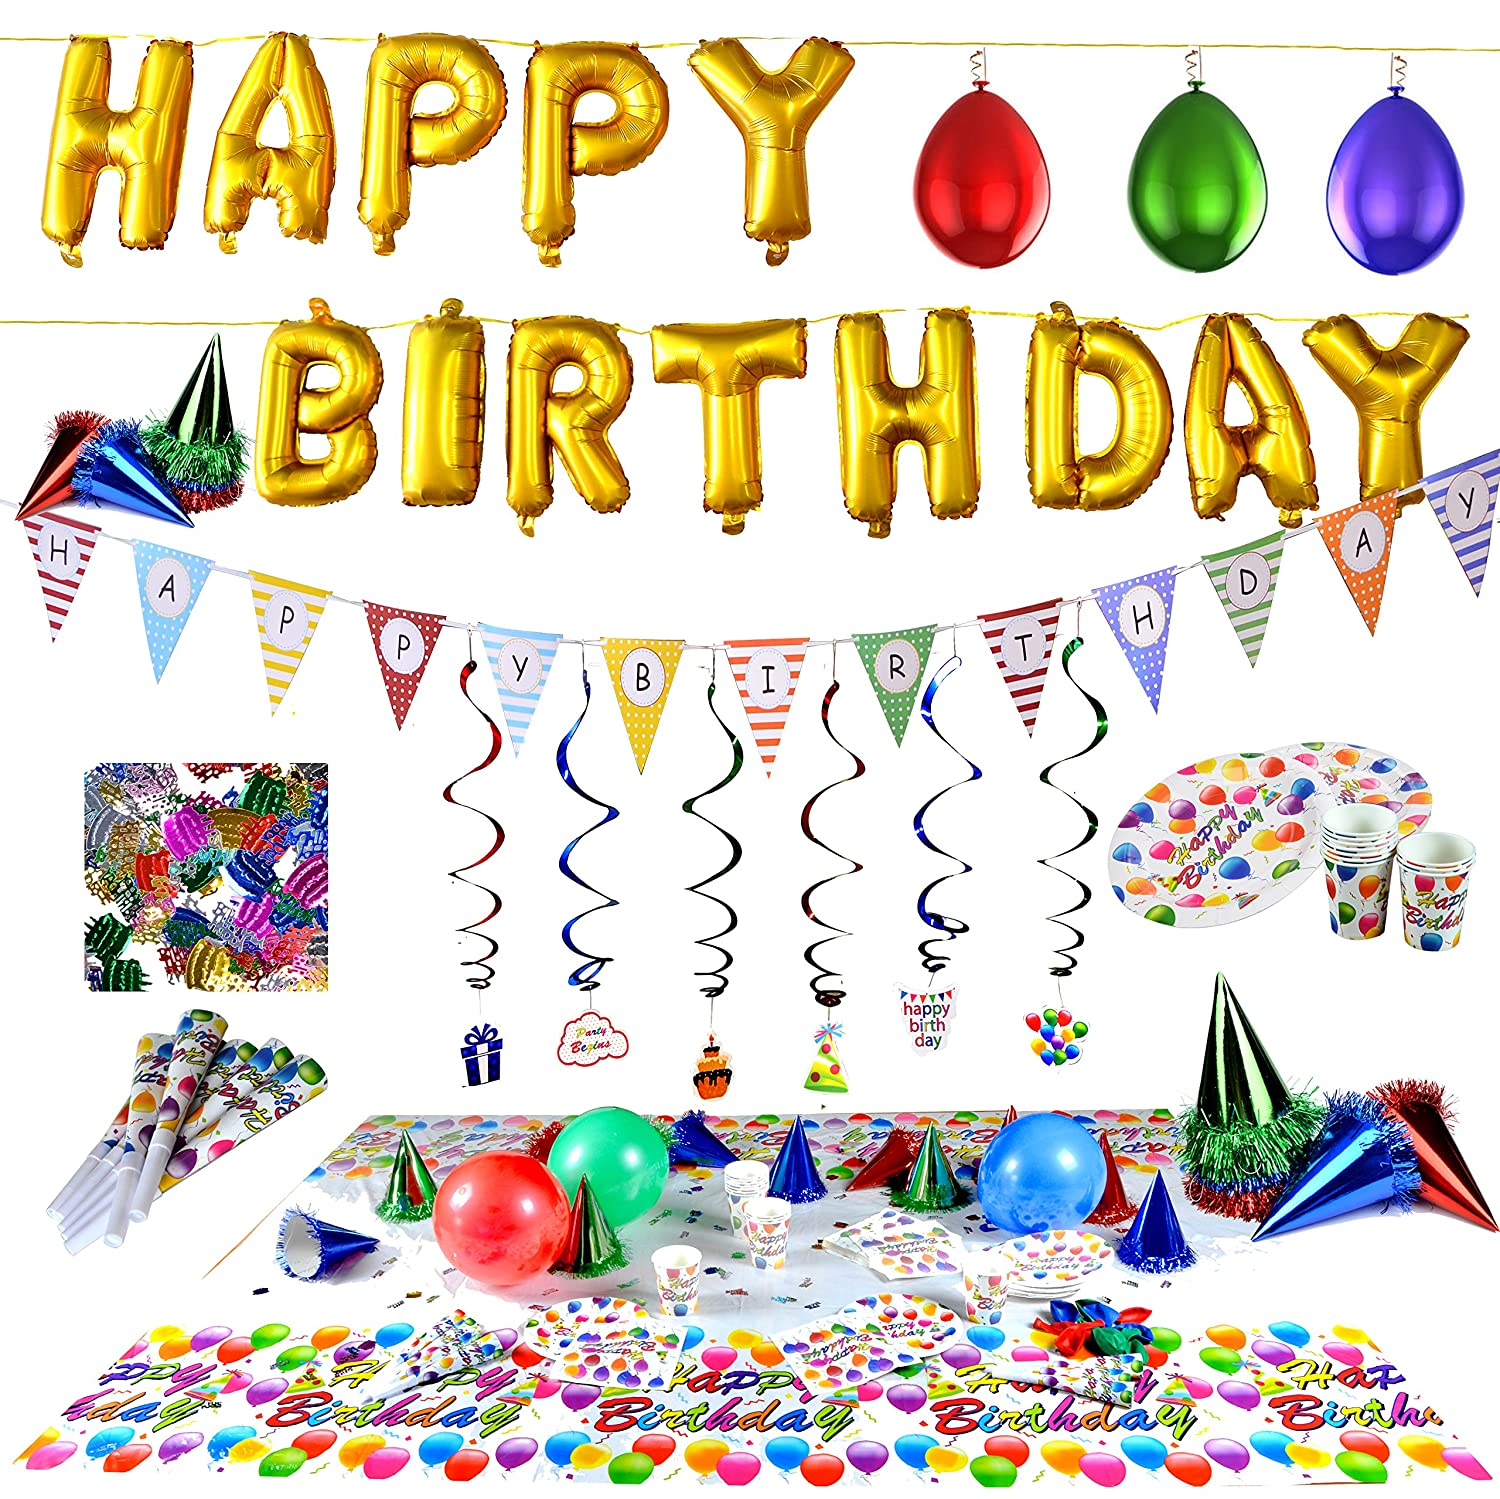 Amazon Birthday Party Supplies And Decorations All In One Pack With Foil Balloons By Joyin ToyOver 100 PC Toys Games